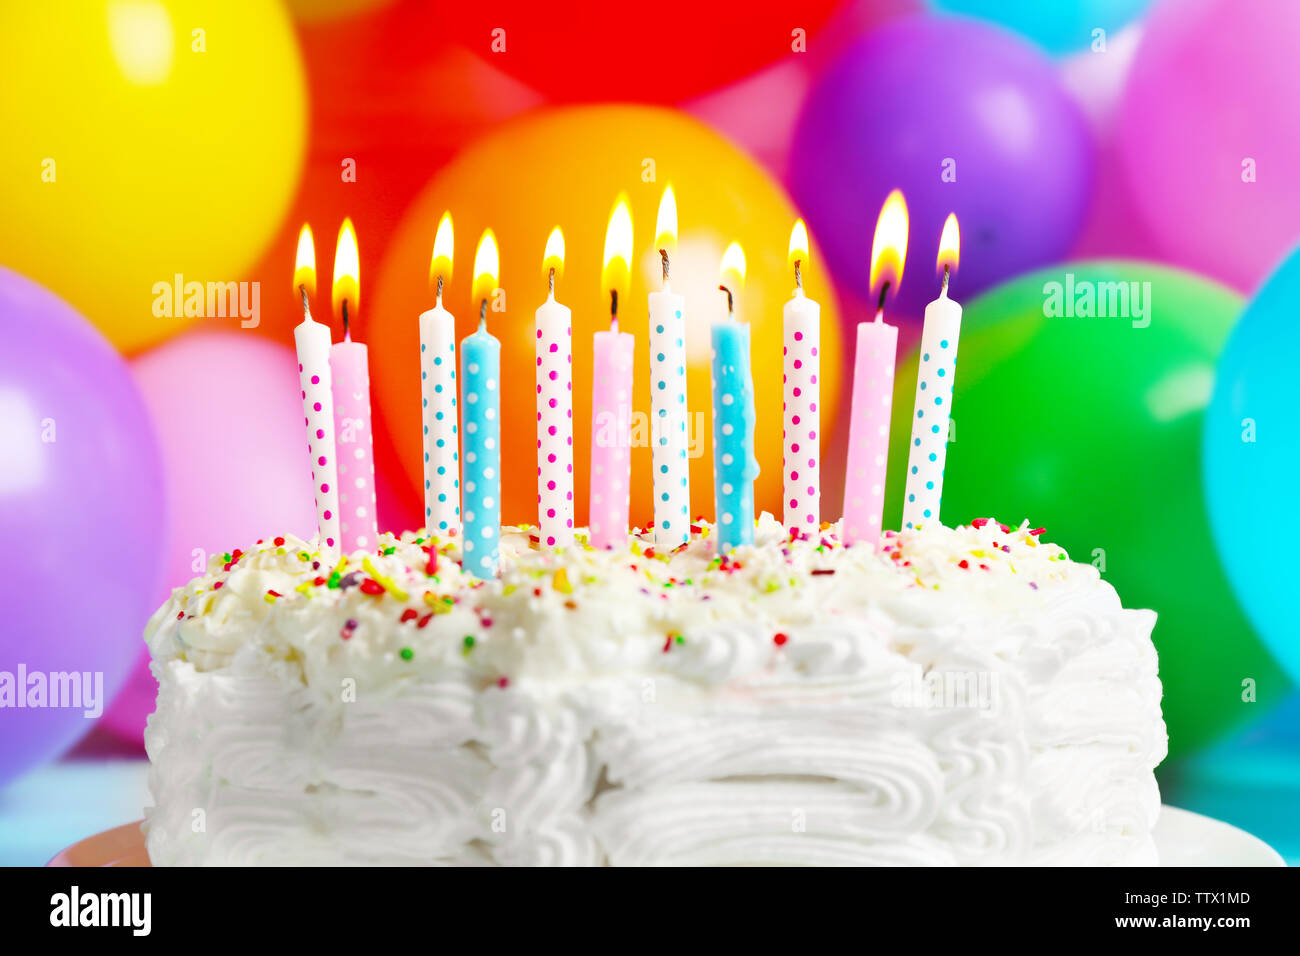 Birthday Cake With Candles.Birthday Cake With Candles On Balloons Background Stock